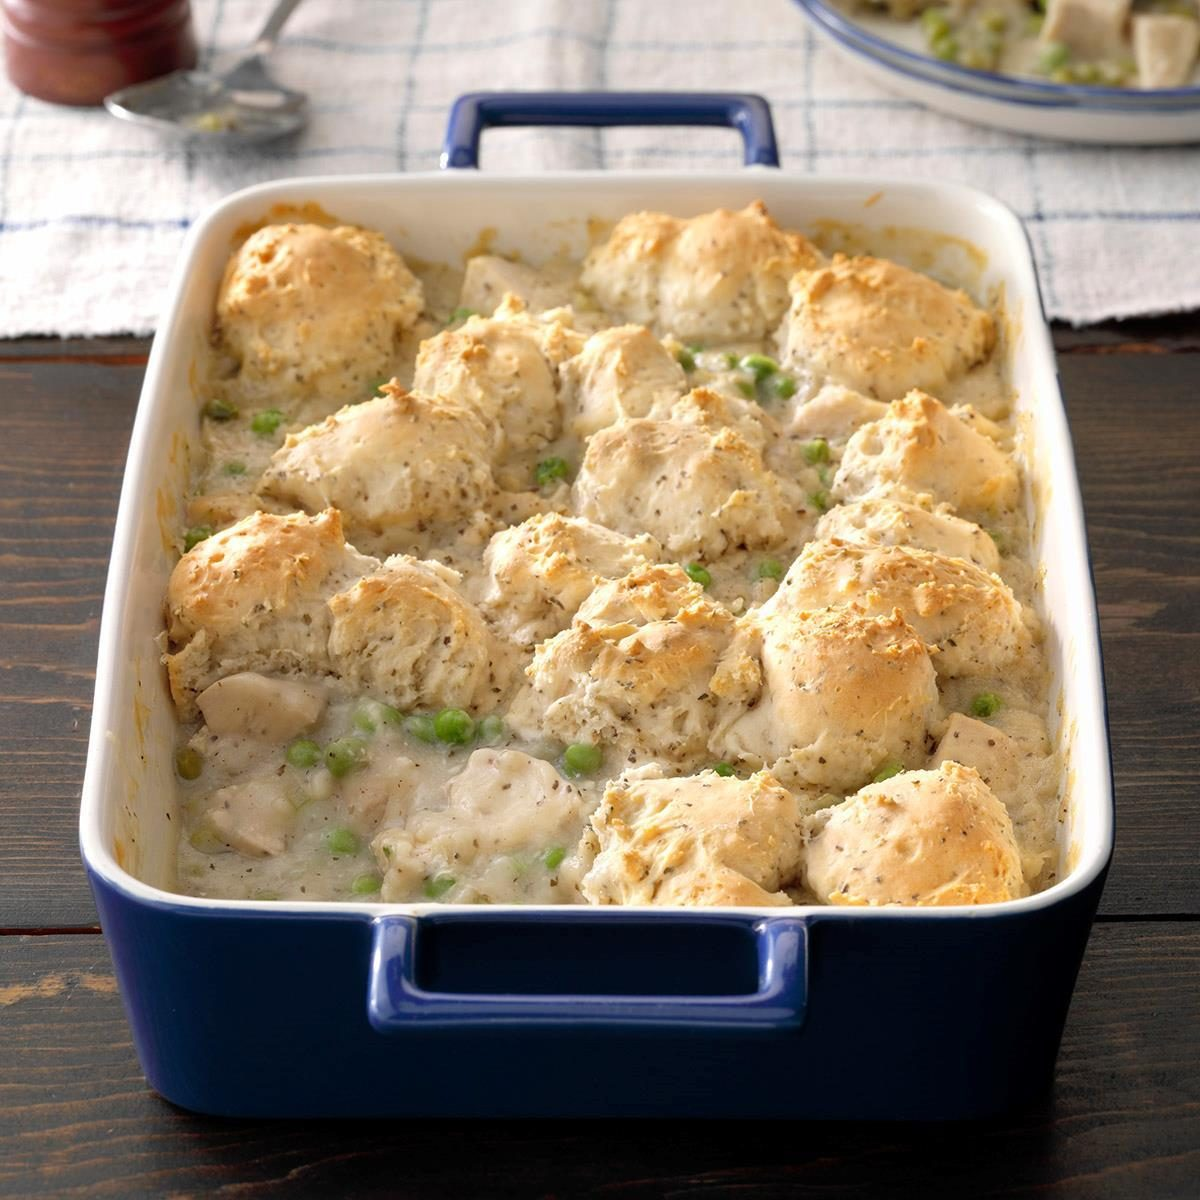 Chicken & Dumpling Casserole Recipe